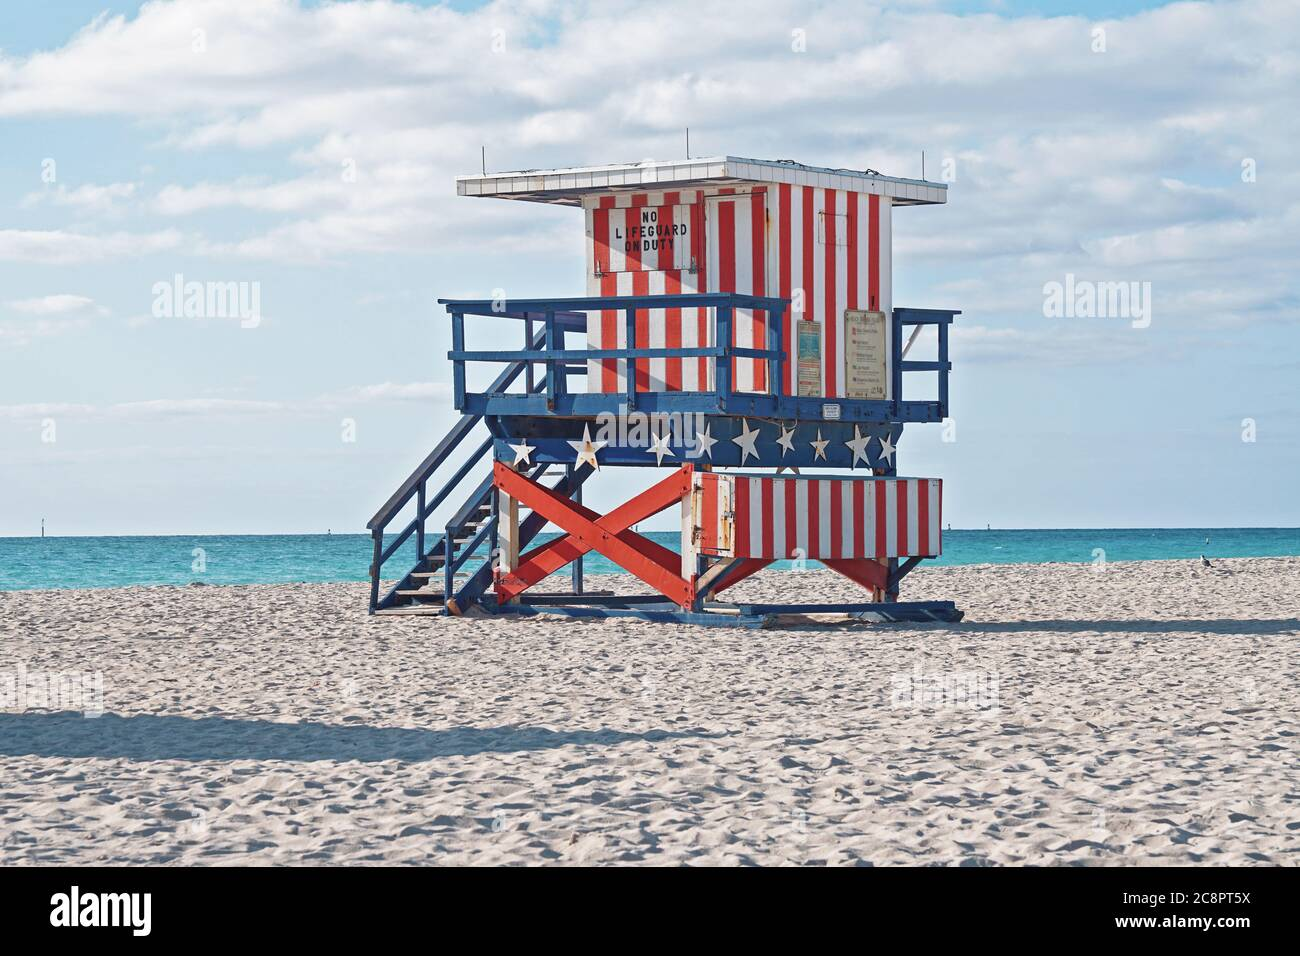 miami beach typical lifeguard tower stars and stripes painted on the beach Stock Photo